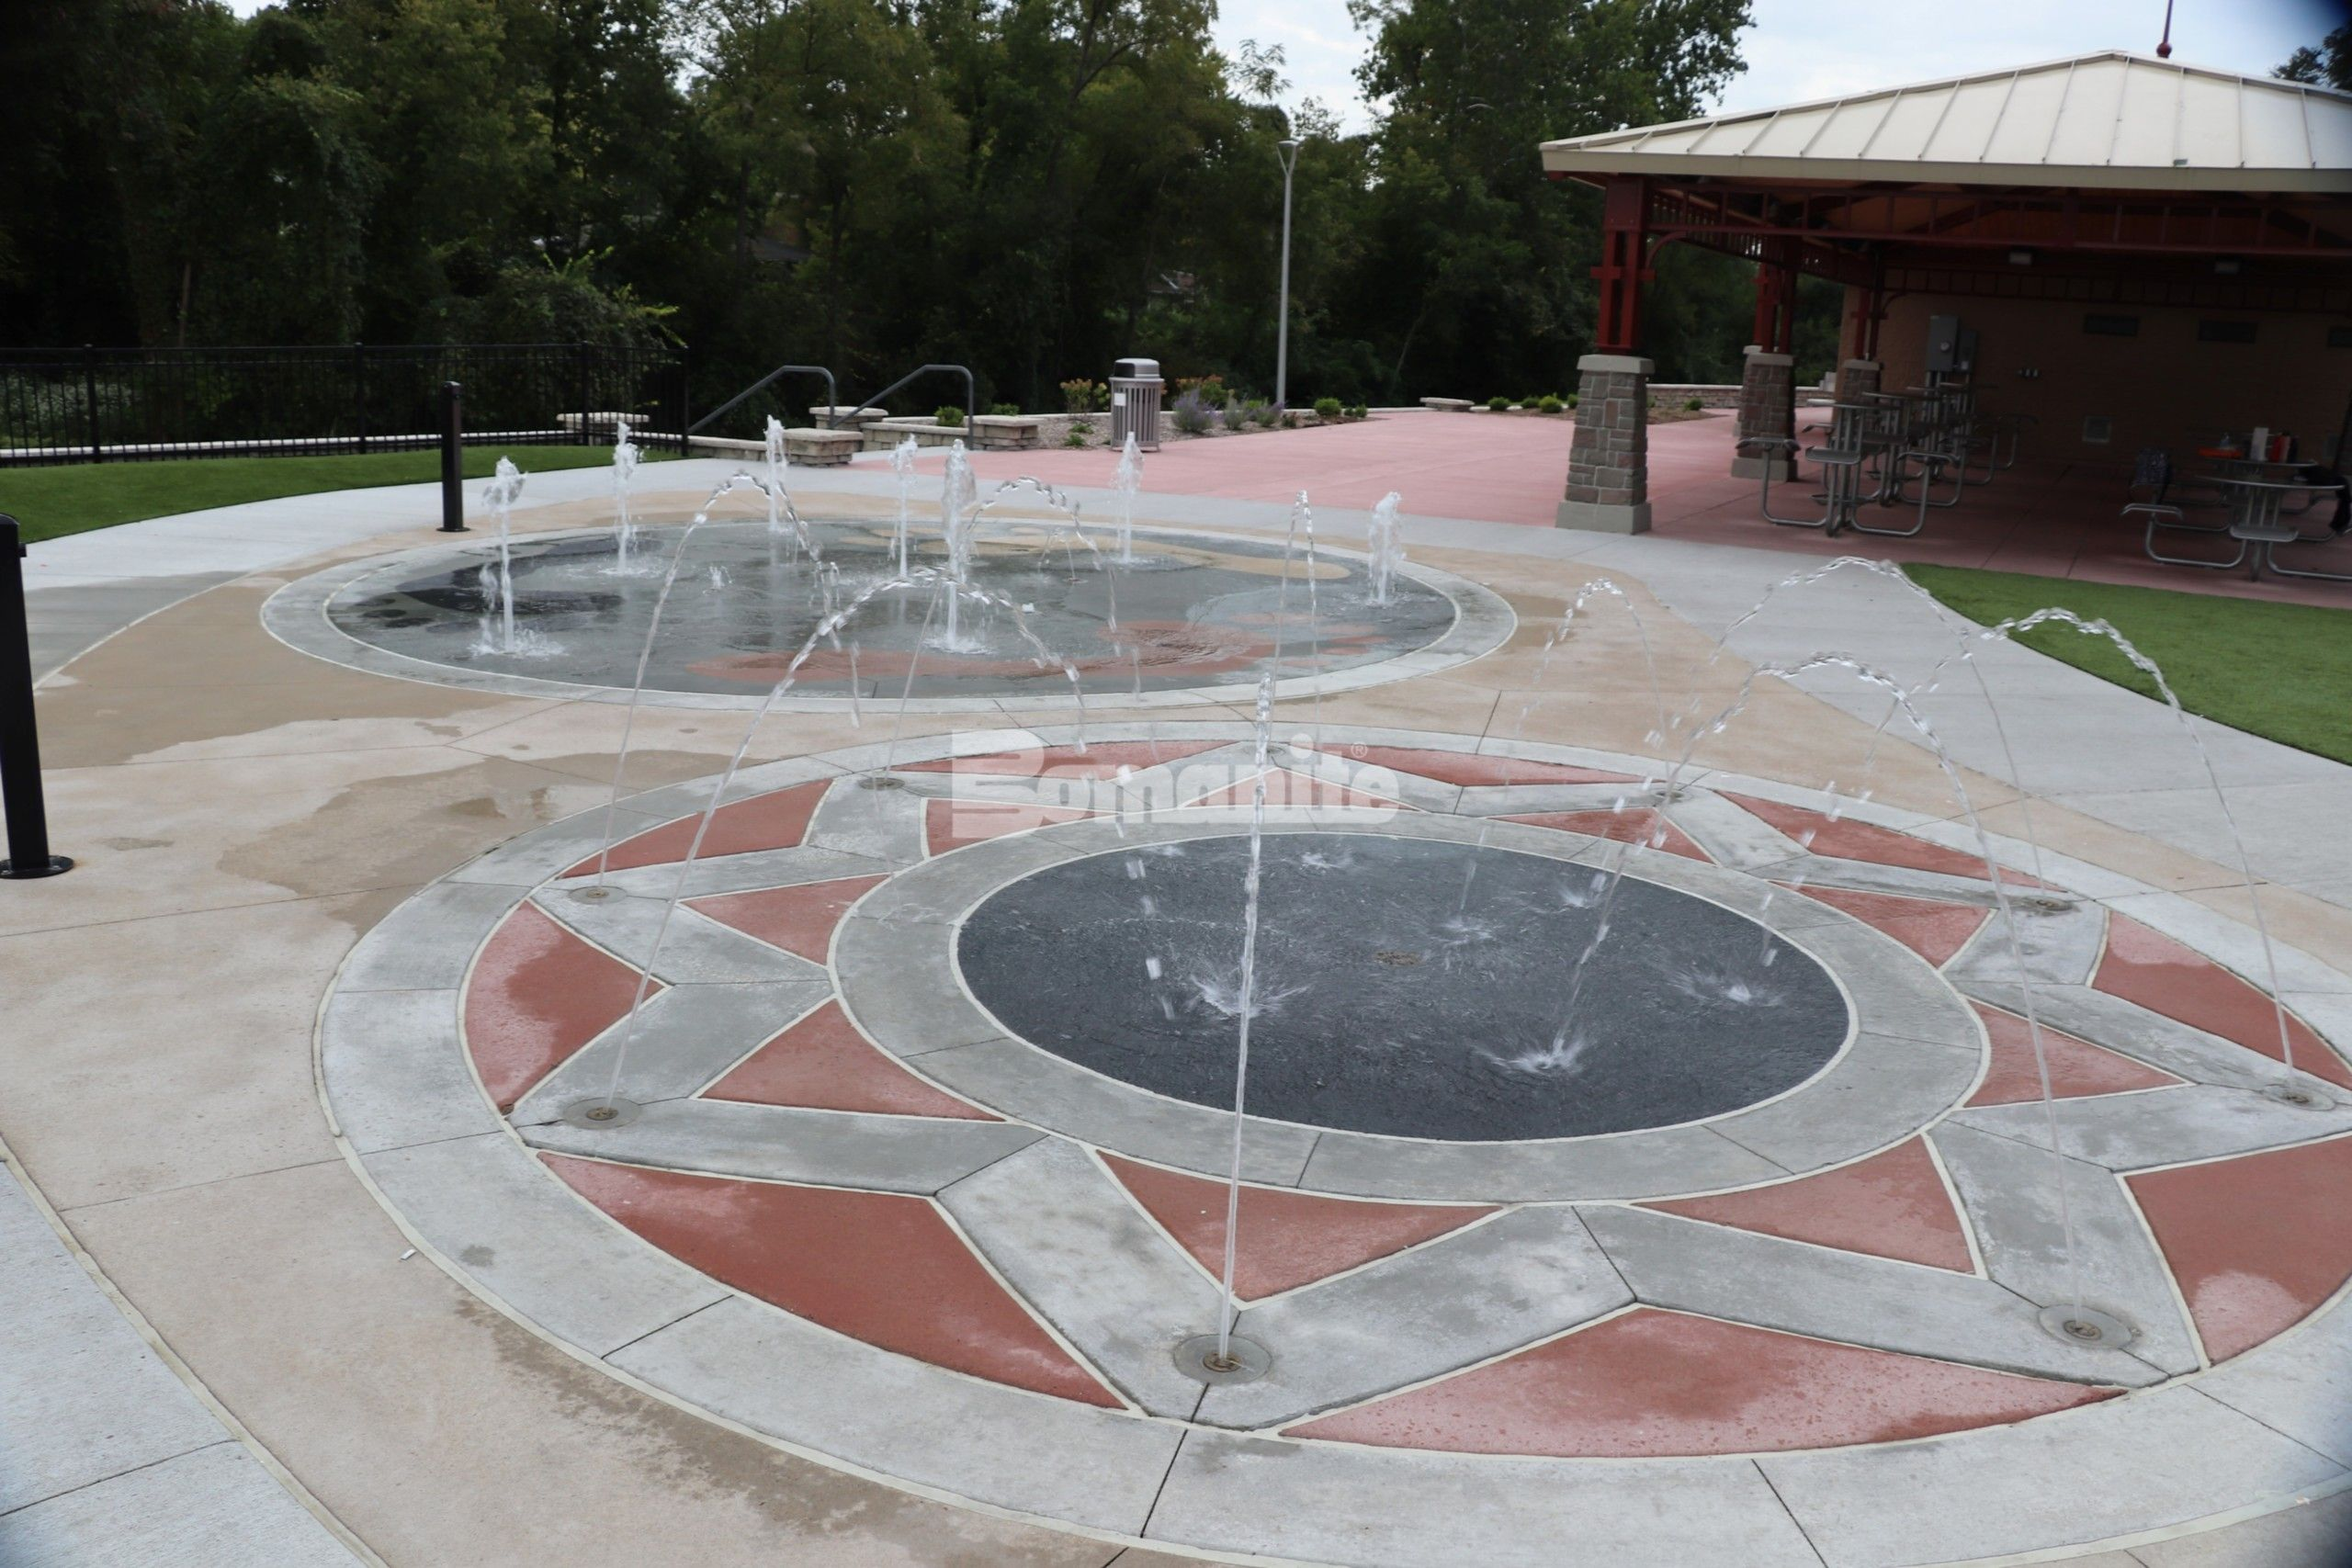 Bomanite Sandscape Texture Exposed Aggregate System with Bomanite Con-Color for a fun splash pad for everyone to enjoy at the Community Park in Jefferson City, MO, installed by Bomanite Licensee Musselman & Hall Contractors, LLC.